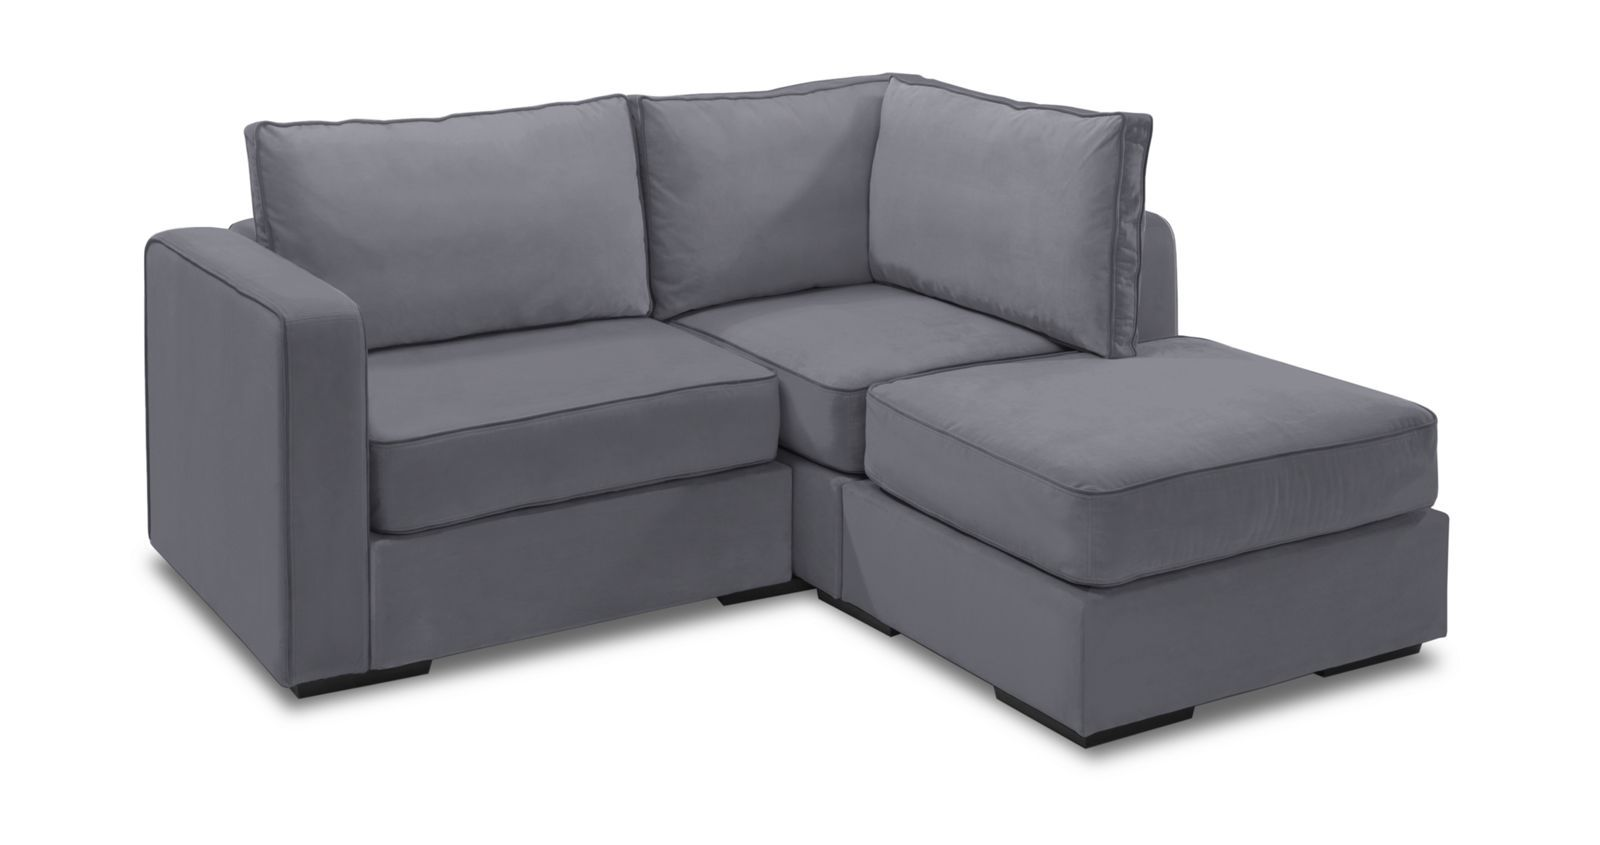 Brilliant Chaise Sectional Loveseat 3 Seats 4 Sides In 2019 Pdpeps Interior Chair Design Pdpepsorg